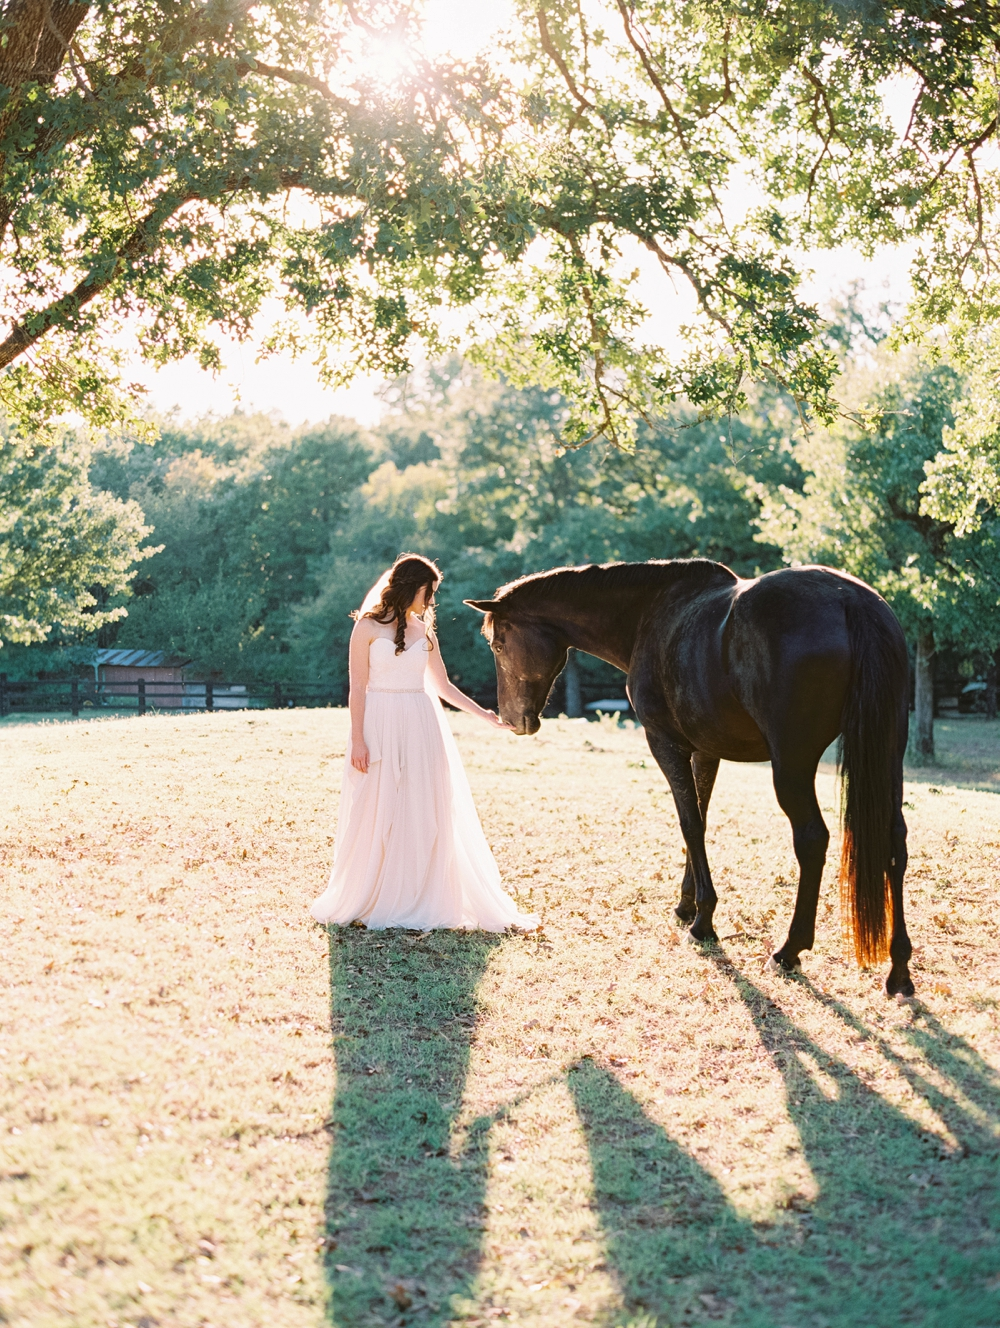 Outdoor Bridal session with Horses